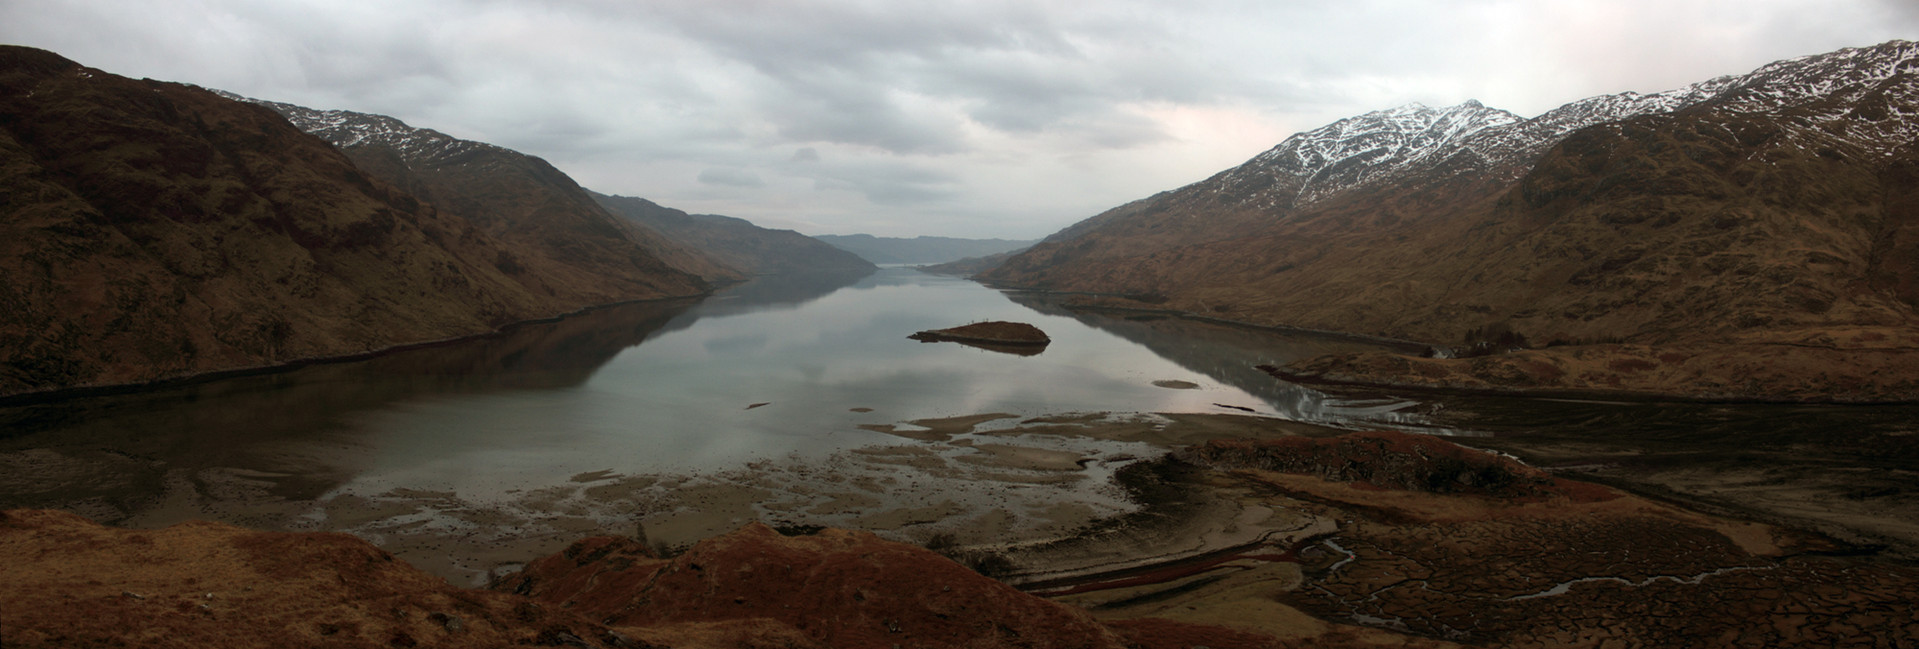 Loch Nevis from close to Sourlies Bothy